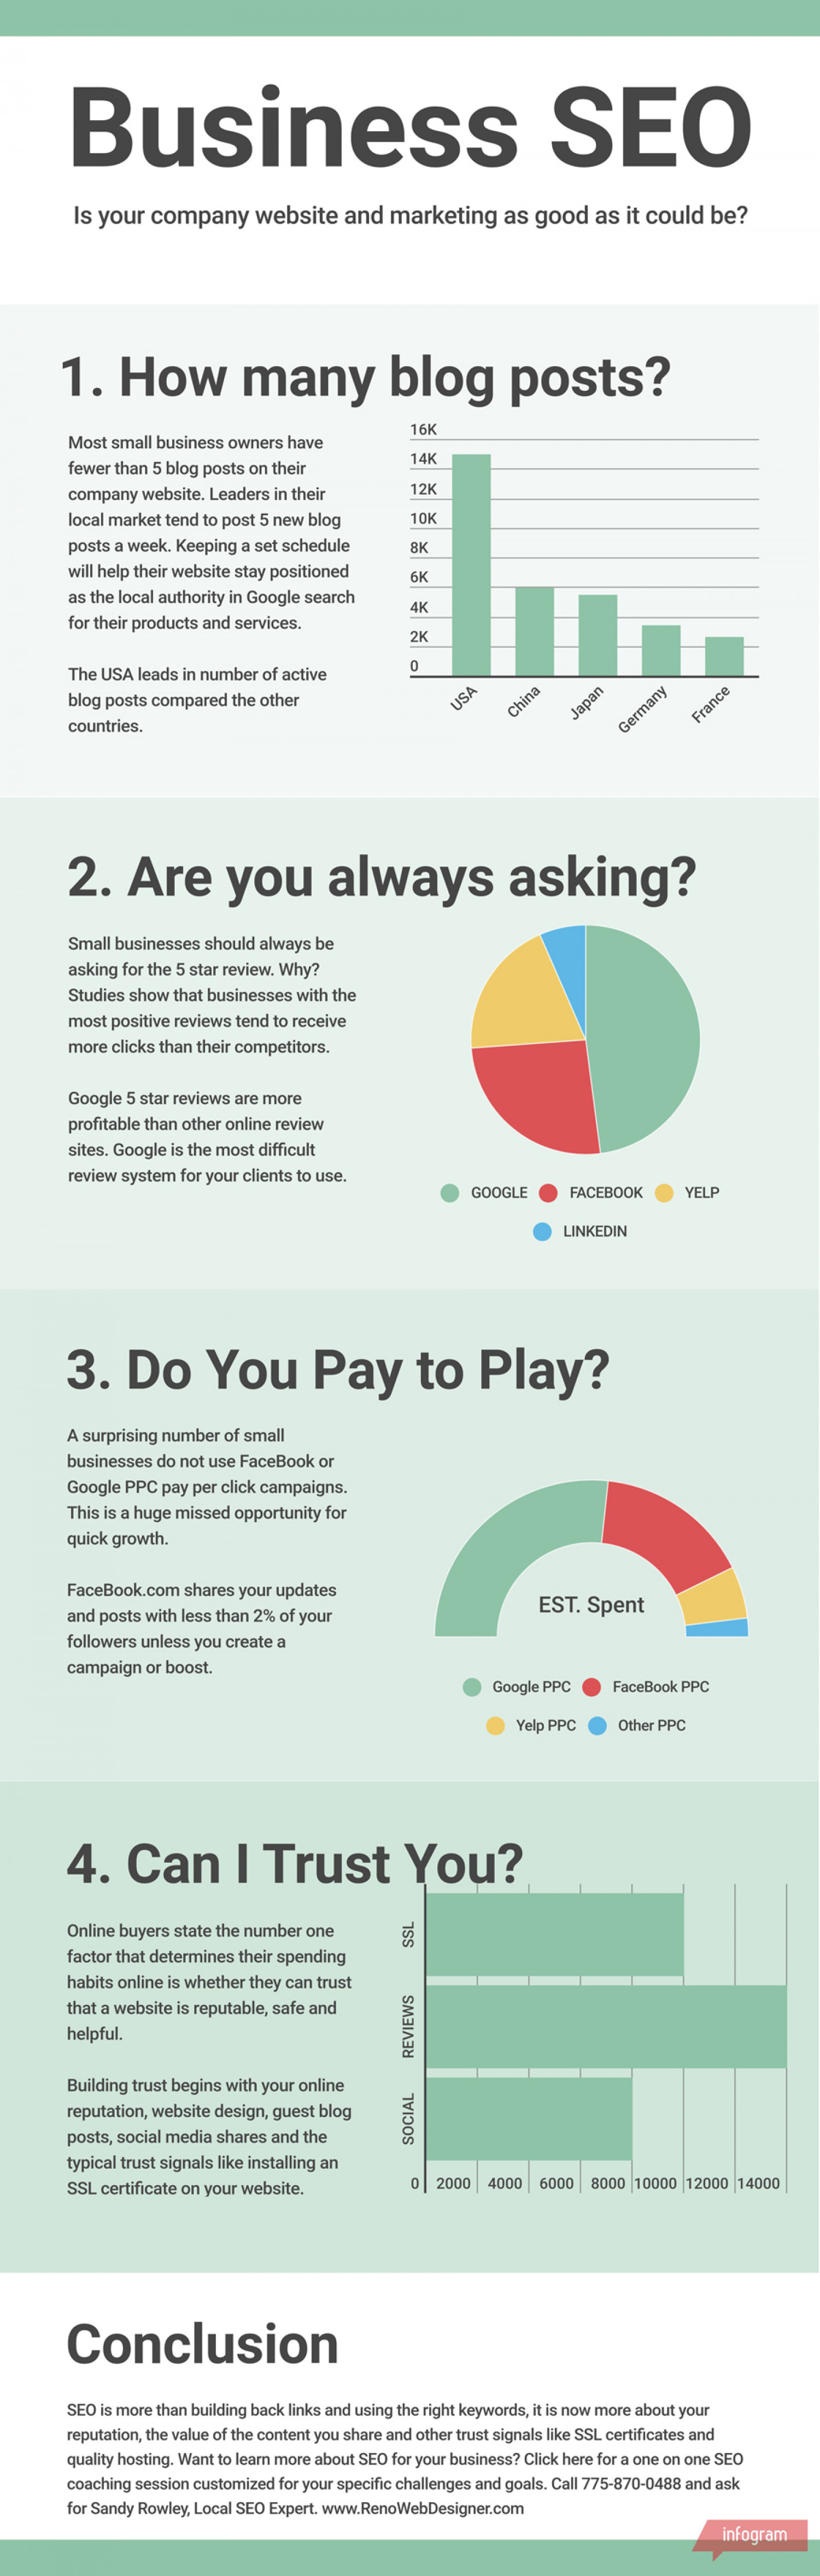 Business SEO   Is Your Company Website Marketing As Good As It Could Be? Infographic